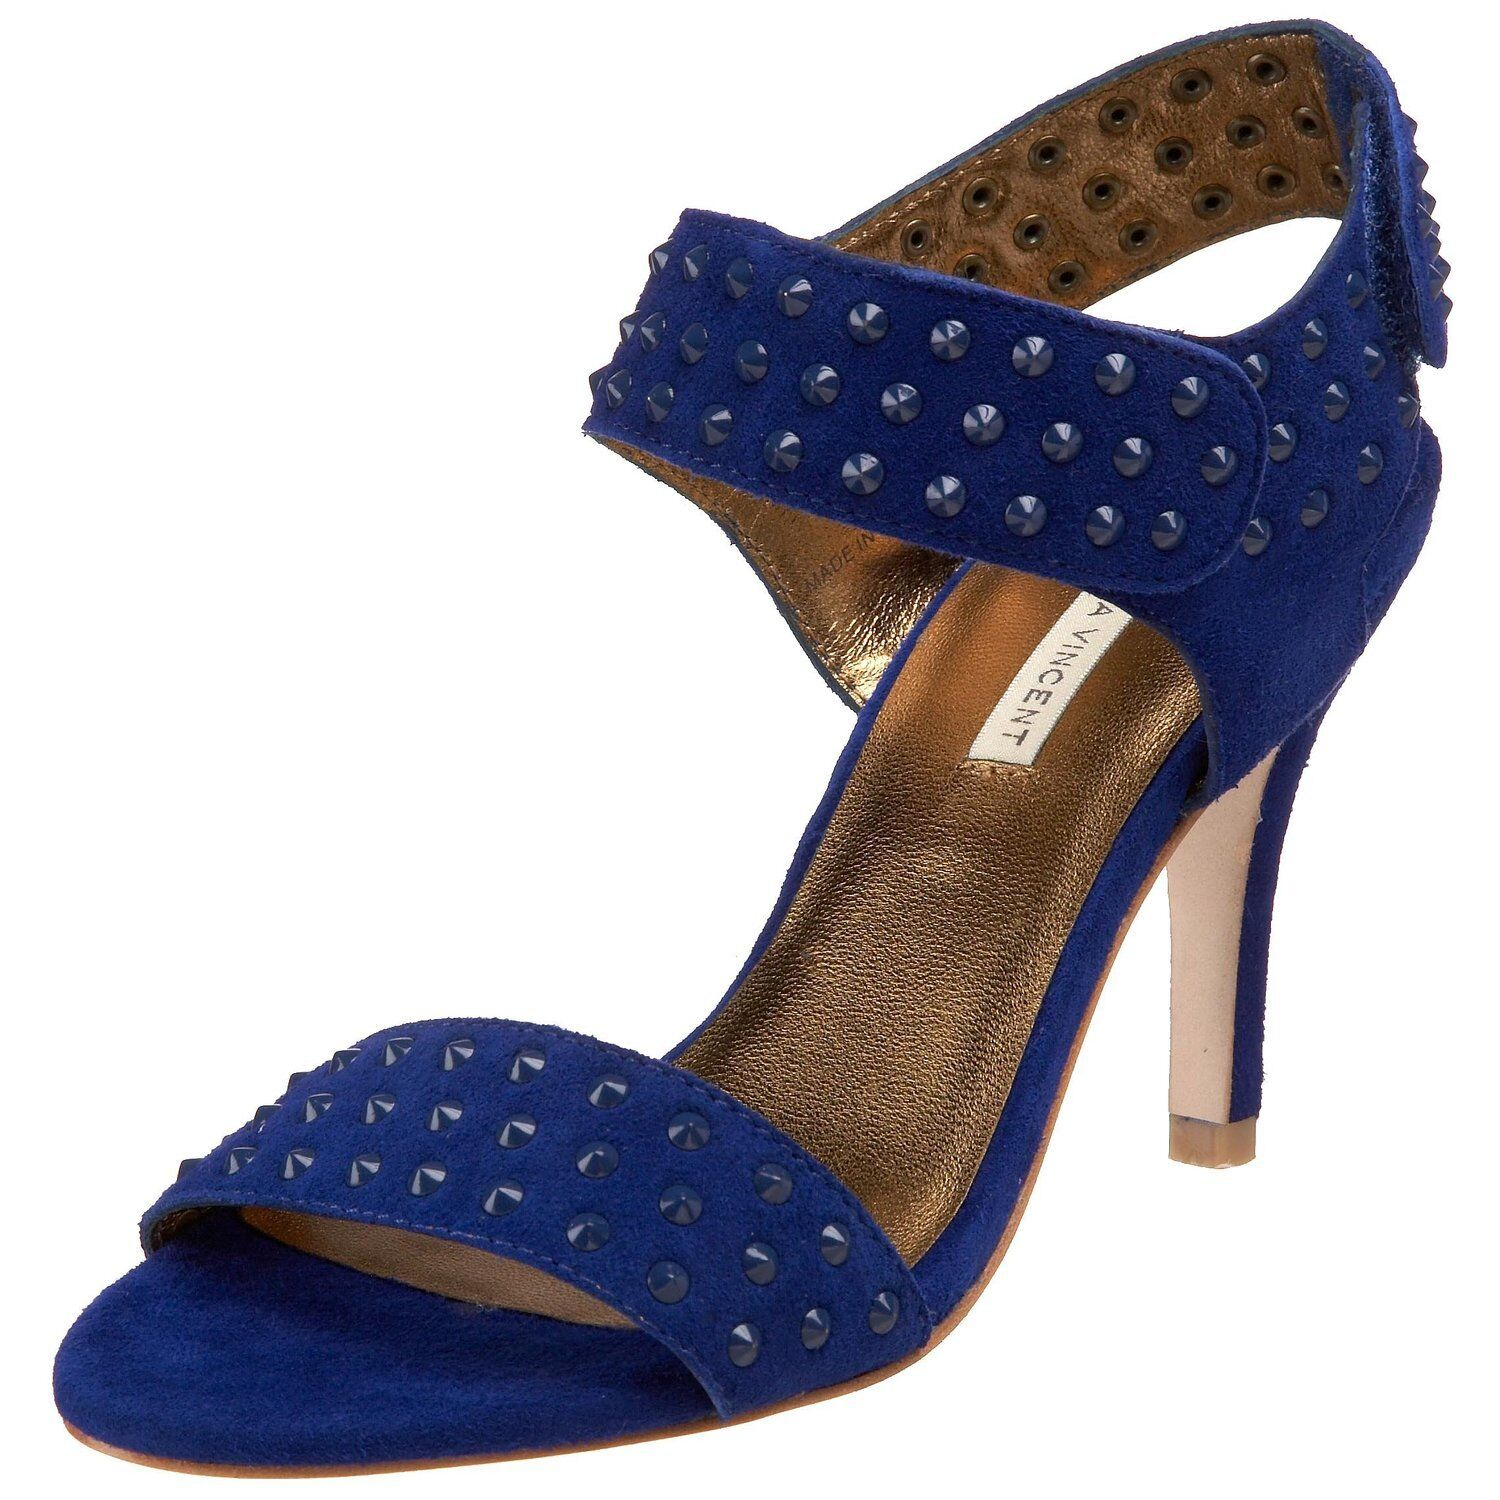 New in Box Cynthia Vincent Femme Bailey Cheville Wrap Sandale, couleur Cobalt, Taille 6.5 M US